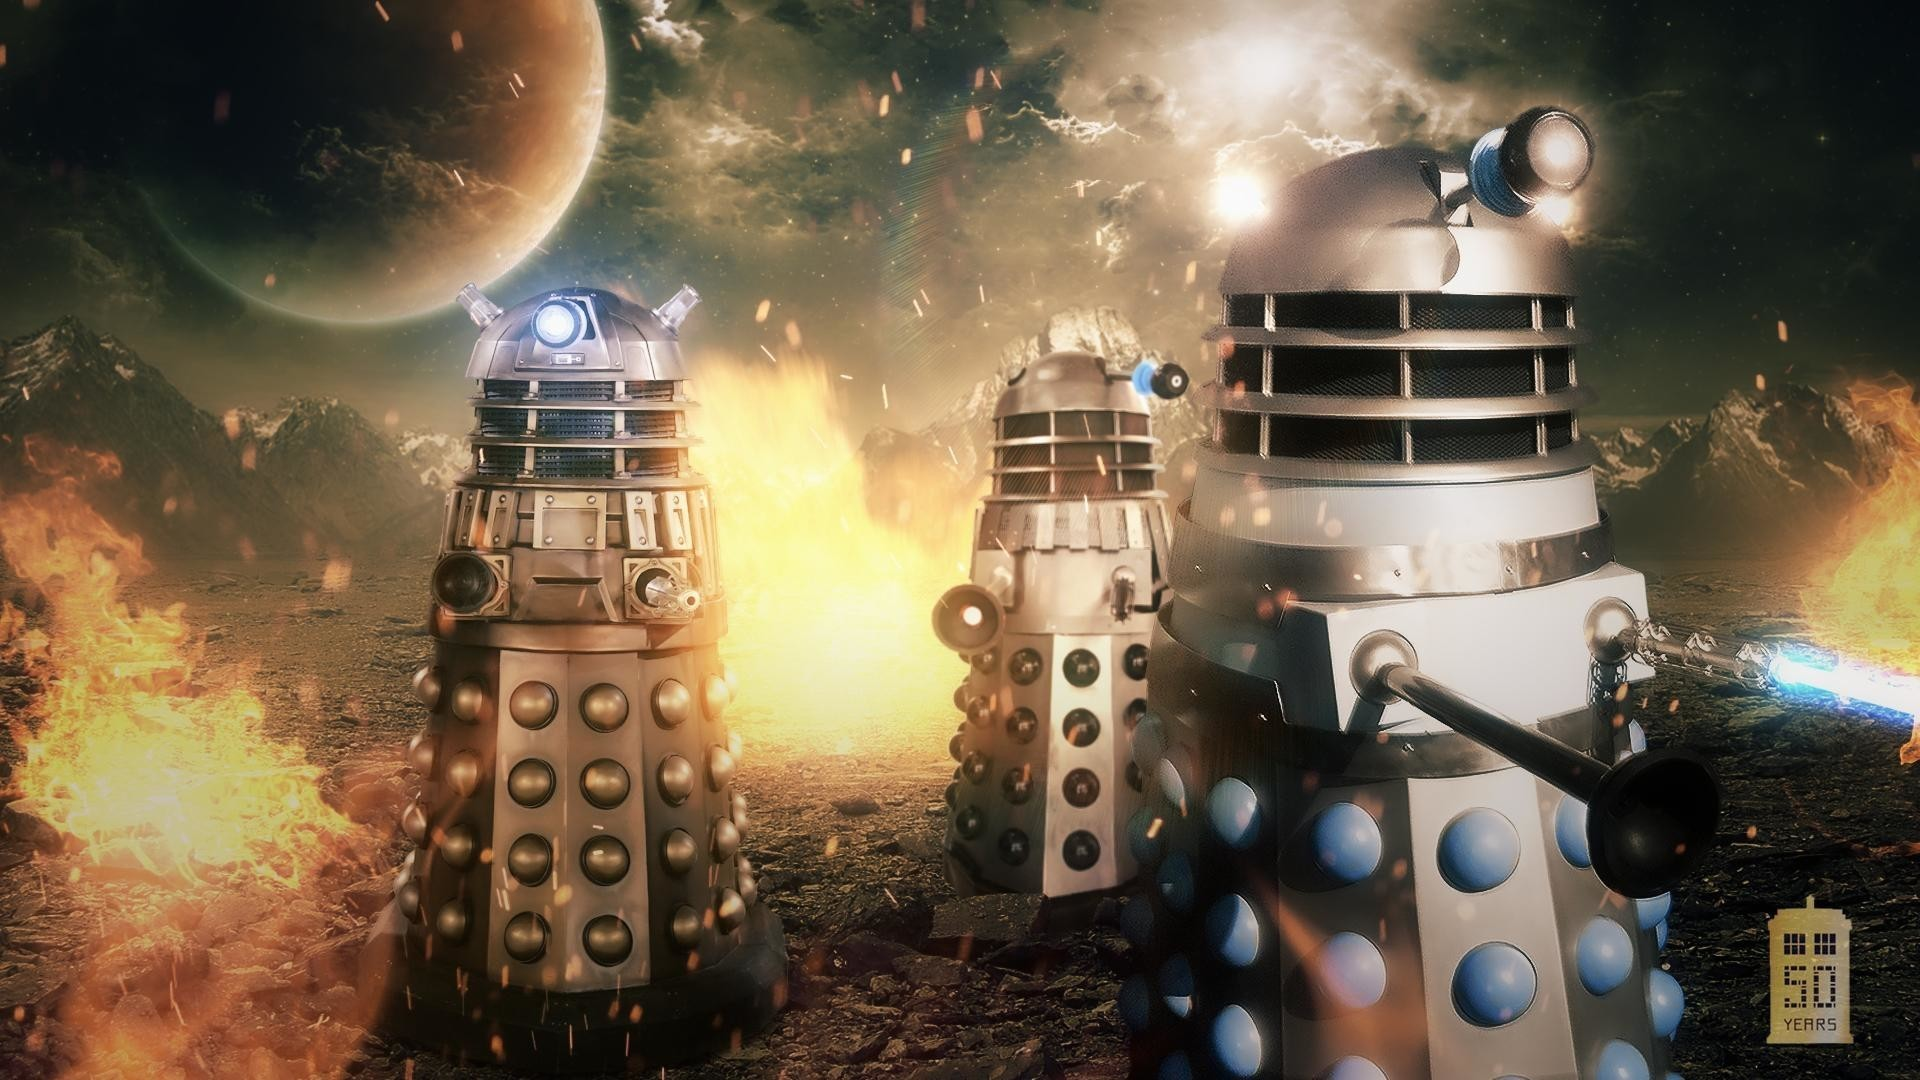 1920x1080 daleks wallpaper